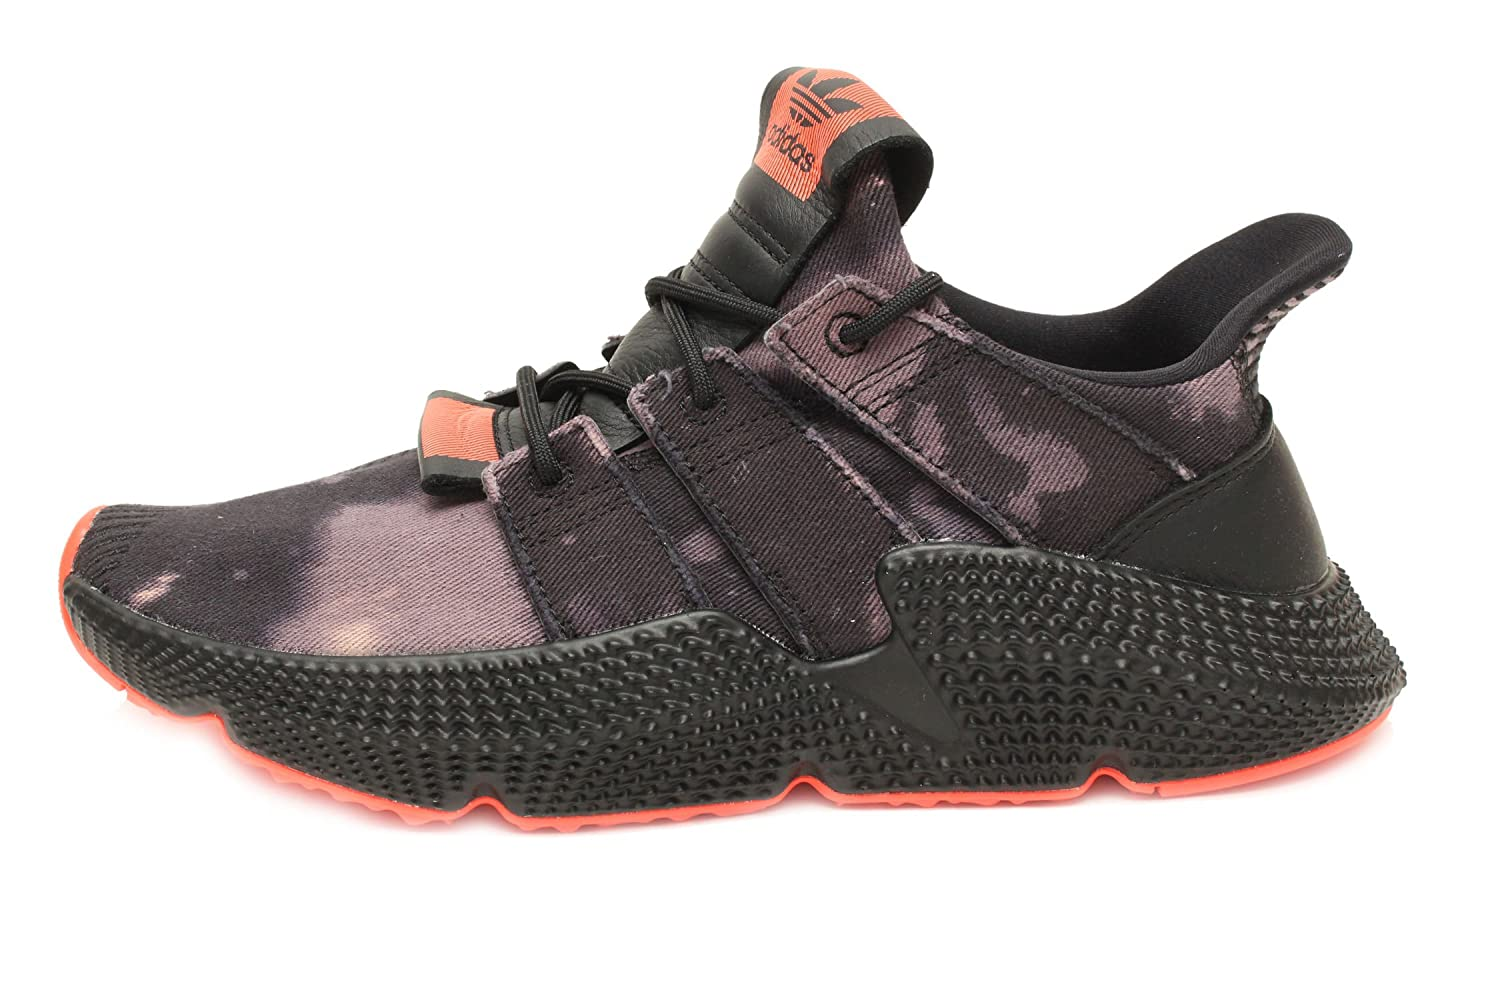 super popular a113d 8e901 Amazon.com  adidas Prophere in Core BlackSolar Red, 5.5 Men 7.5 Women   Fashion Sneakers